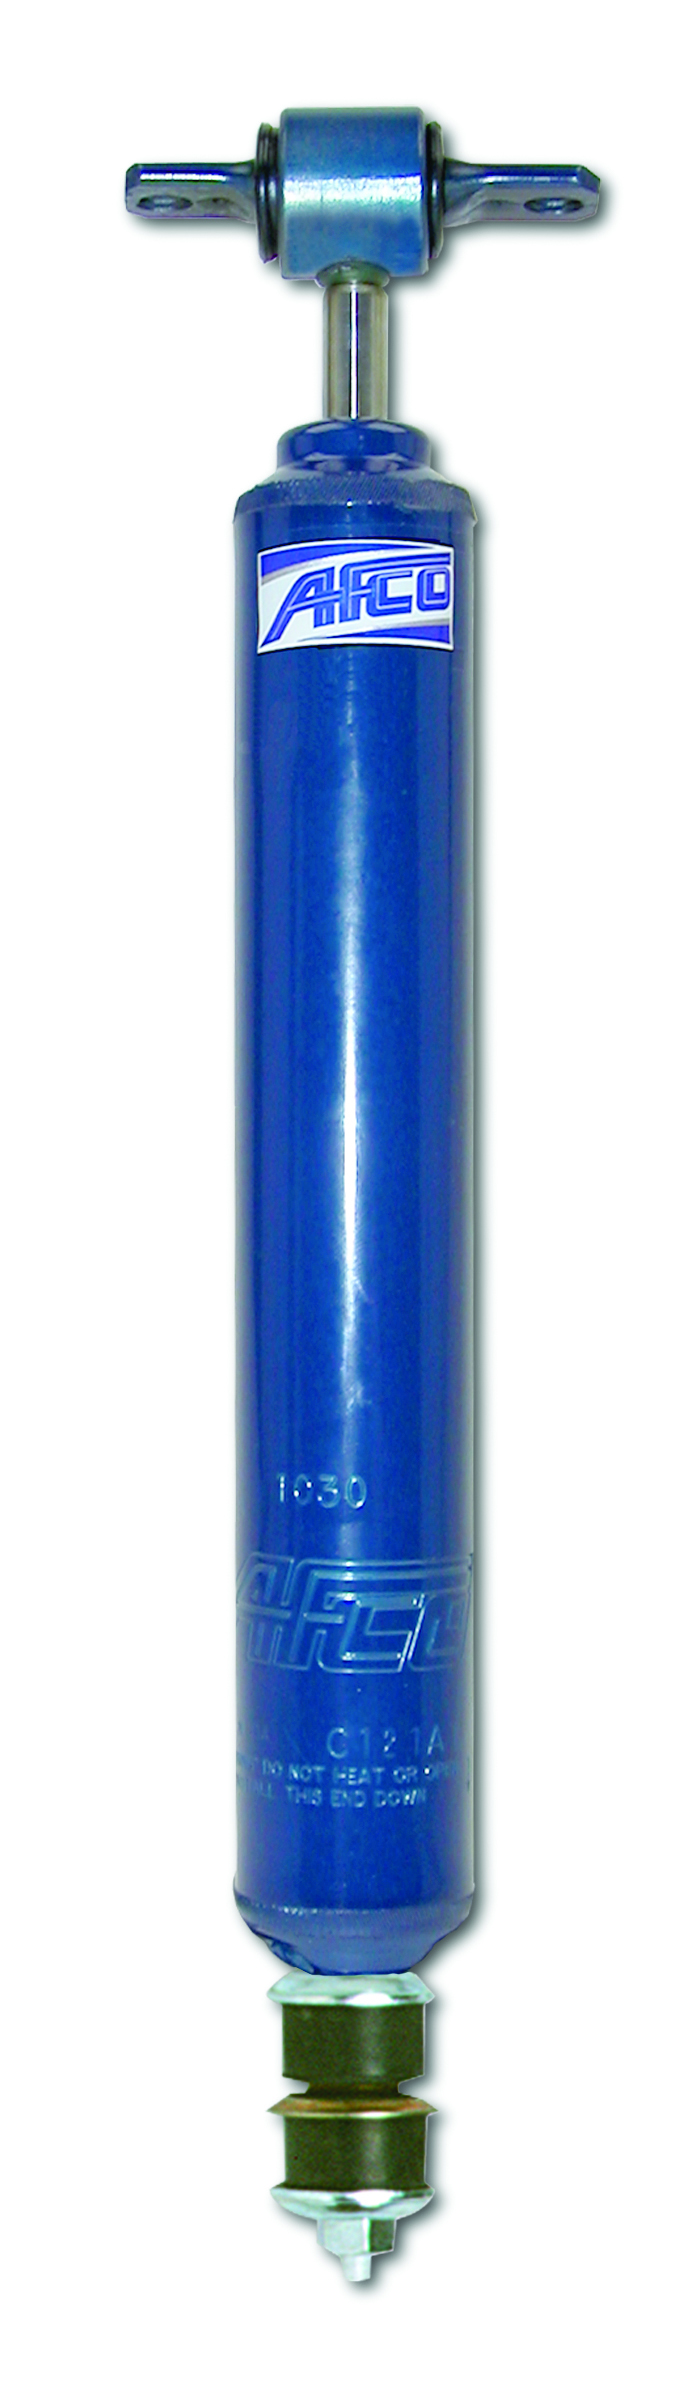 AFCO Racing Products 1034 Shock, 10 Series, Twintube, 14.50 in Compressed / 22.50 in Extended, 2.02 in OD, 3-5 Valve, Steel, Blue Paint, GM F-Body 1970-81, Each